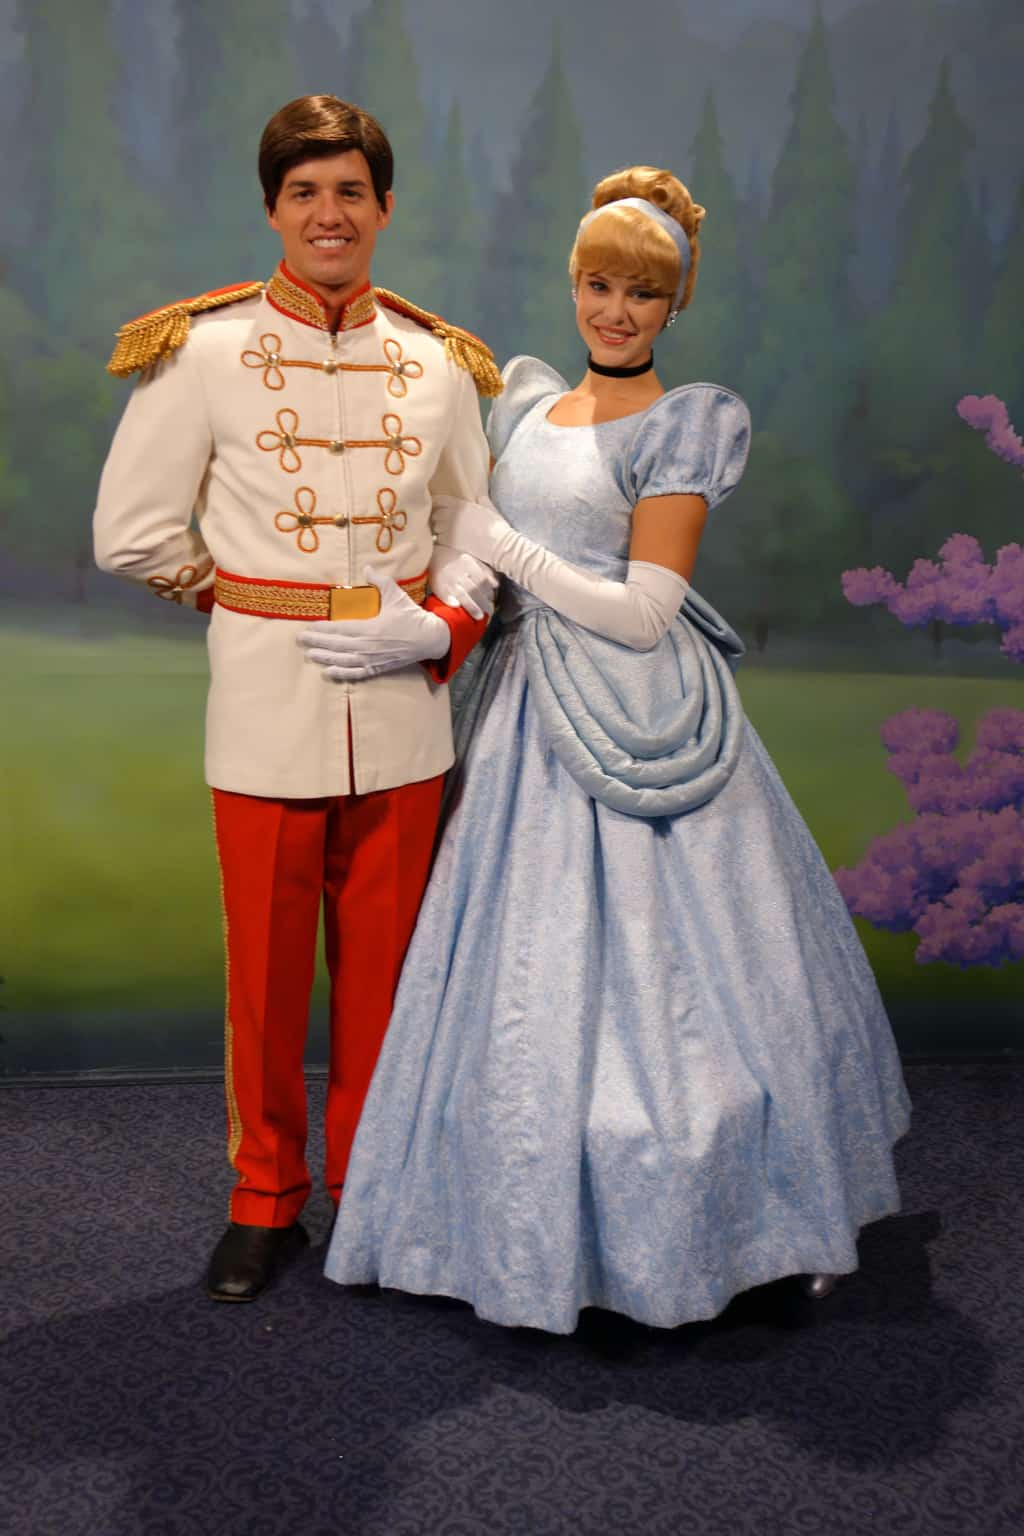 magic and cinderella The cinderella story,  this pg-rated treat rekindles the old disney magic in a ballroom dance of two strangers becoming lovers.